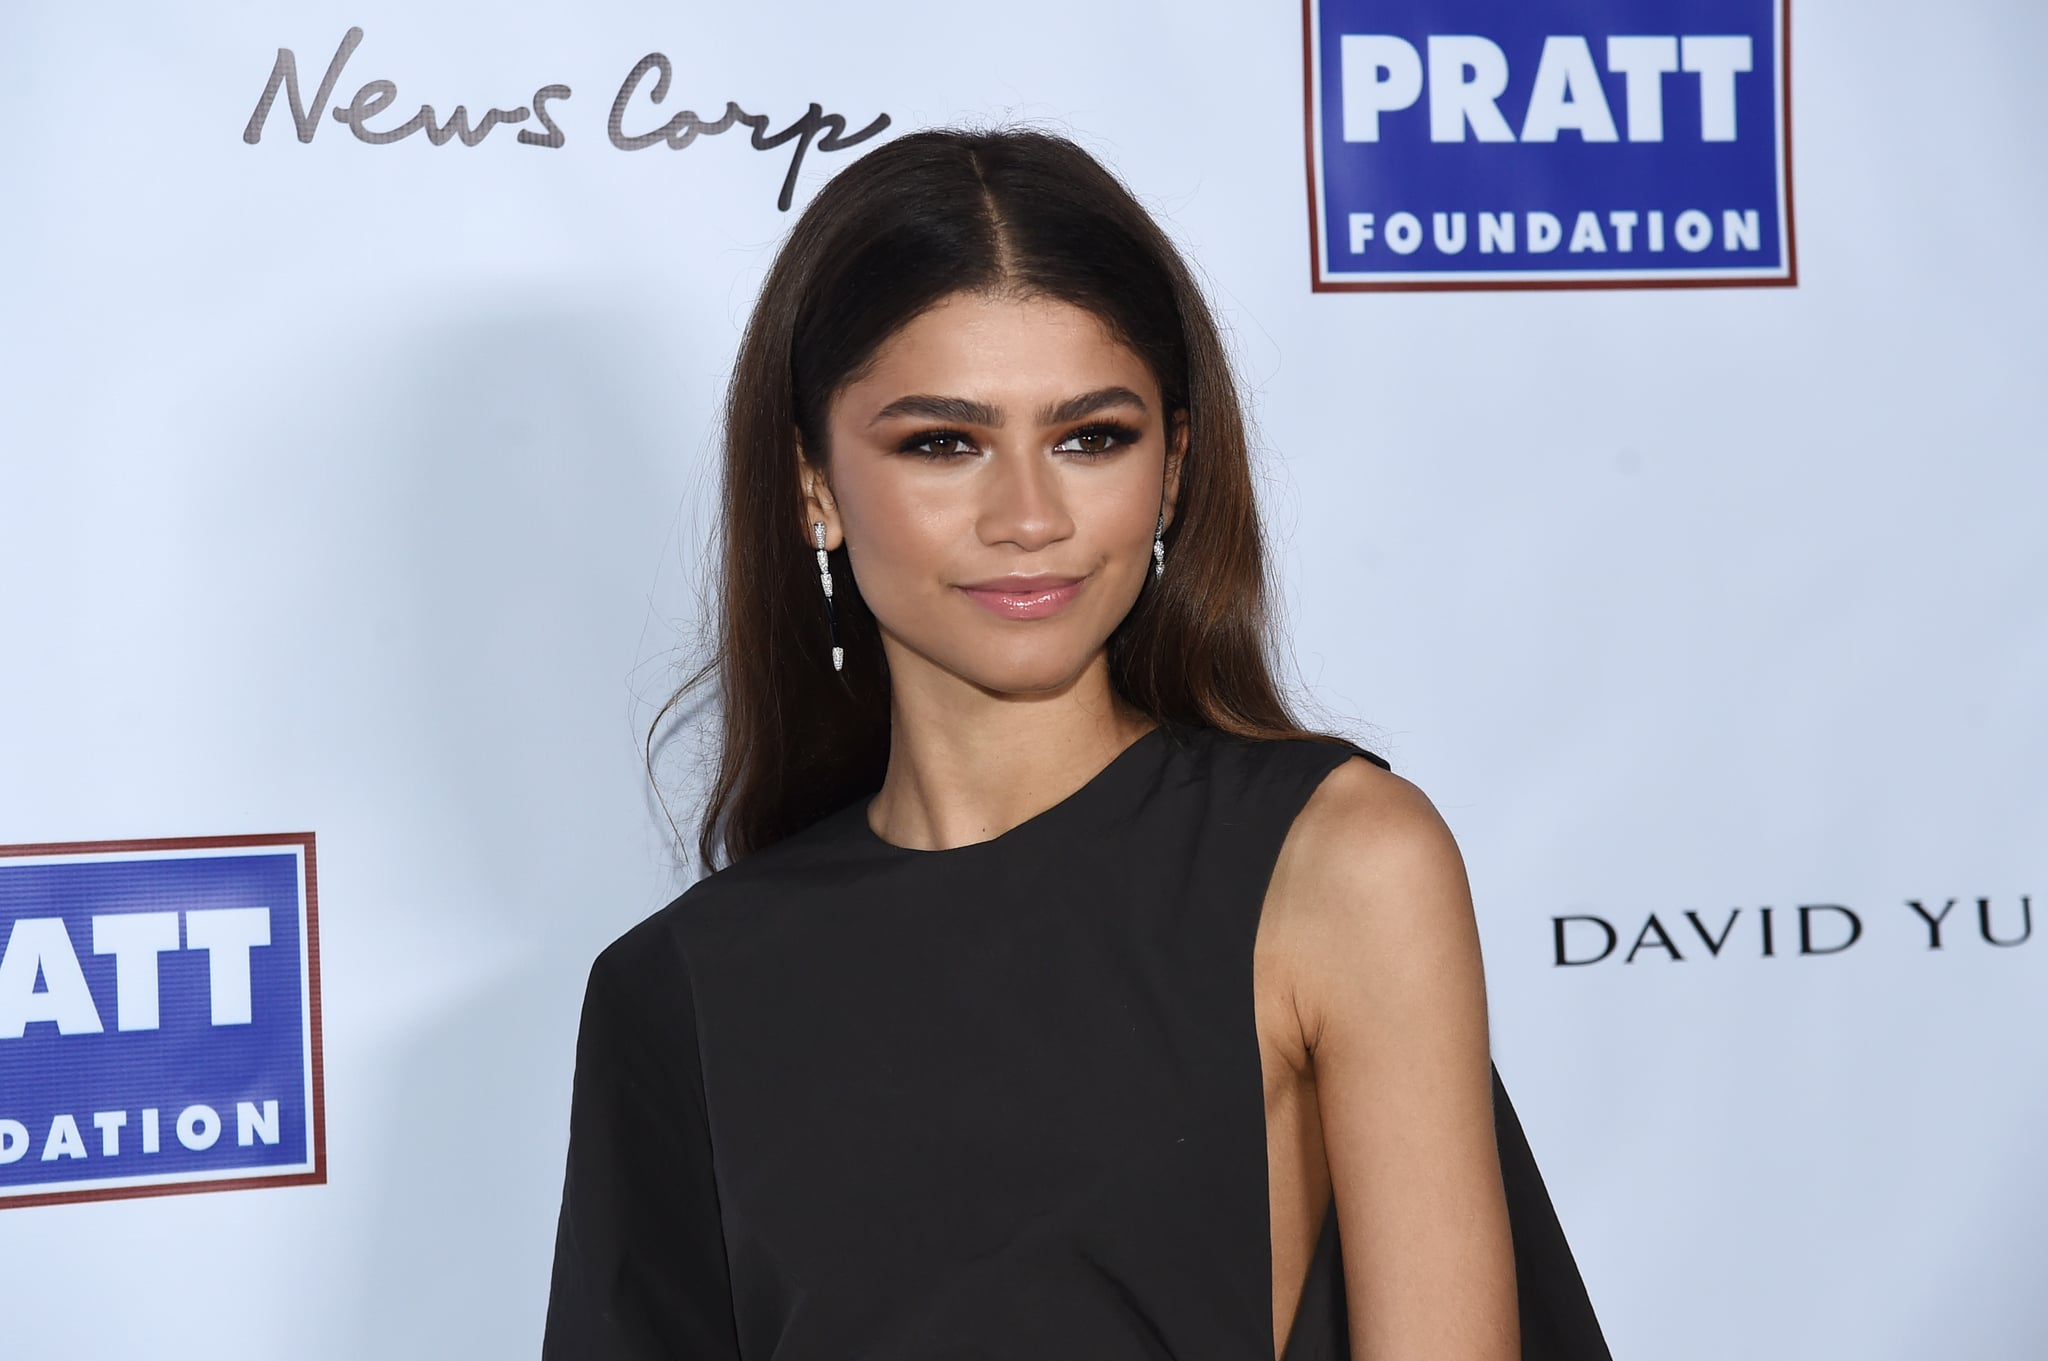 NEW YORK, NEW YORK - JANUARY 30: Zendaya attends the 2020 AAA Arts Awards at Skylight Modern on January 30, 2020 in New York City. (Photo by Jamie McCarthy/Getty Images)